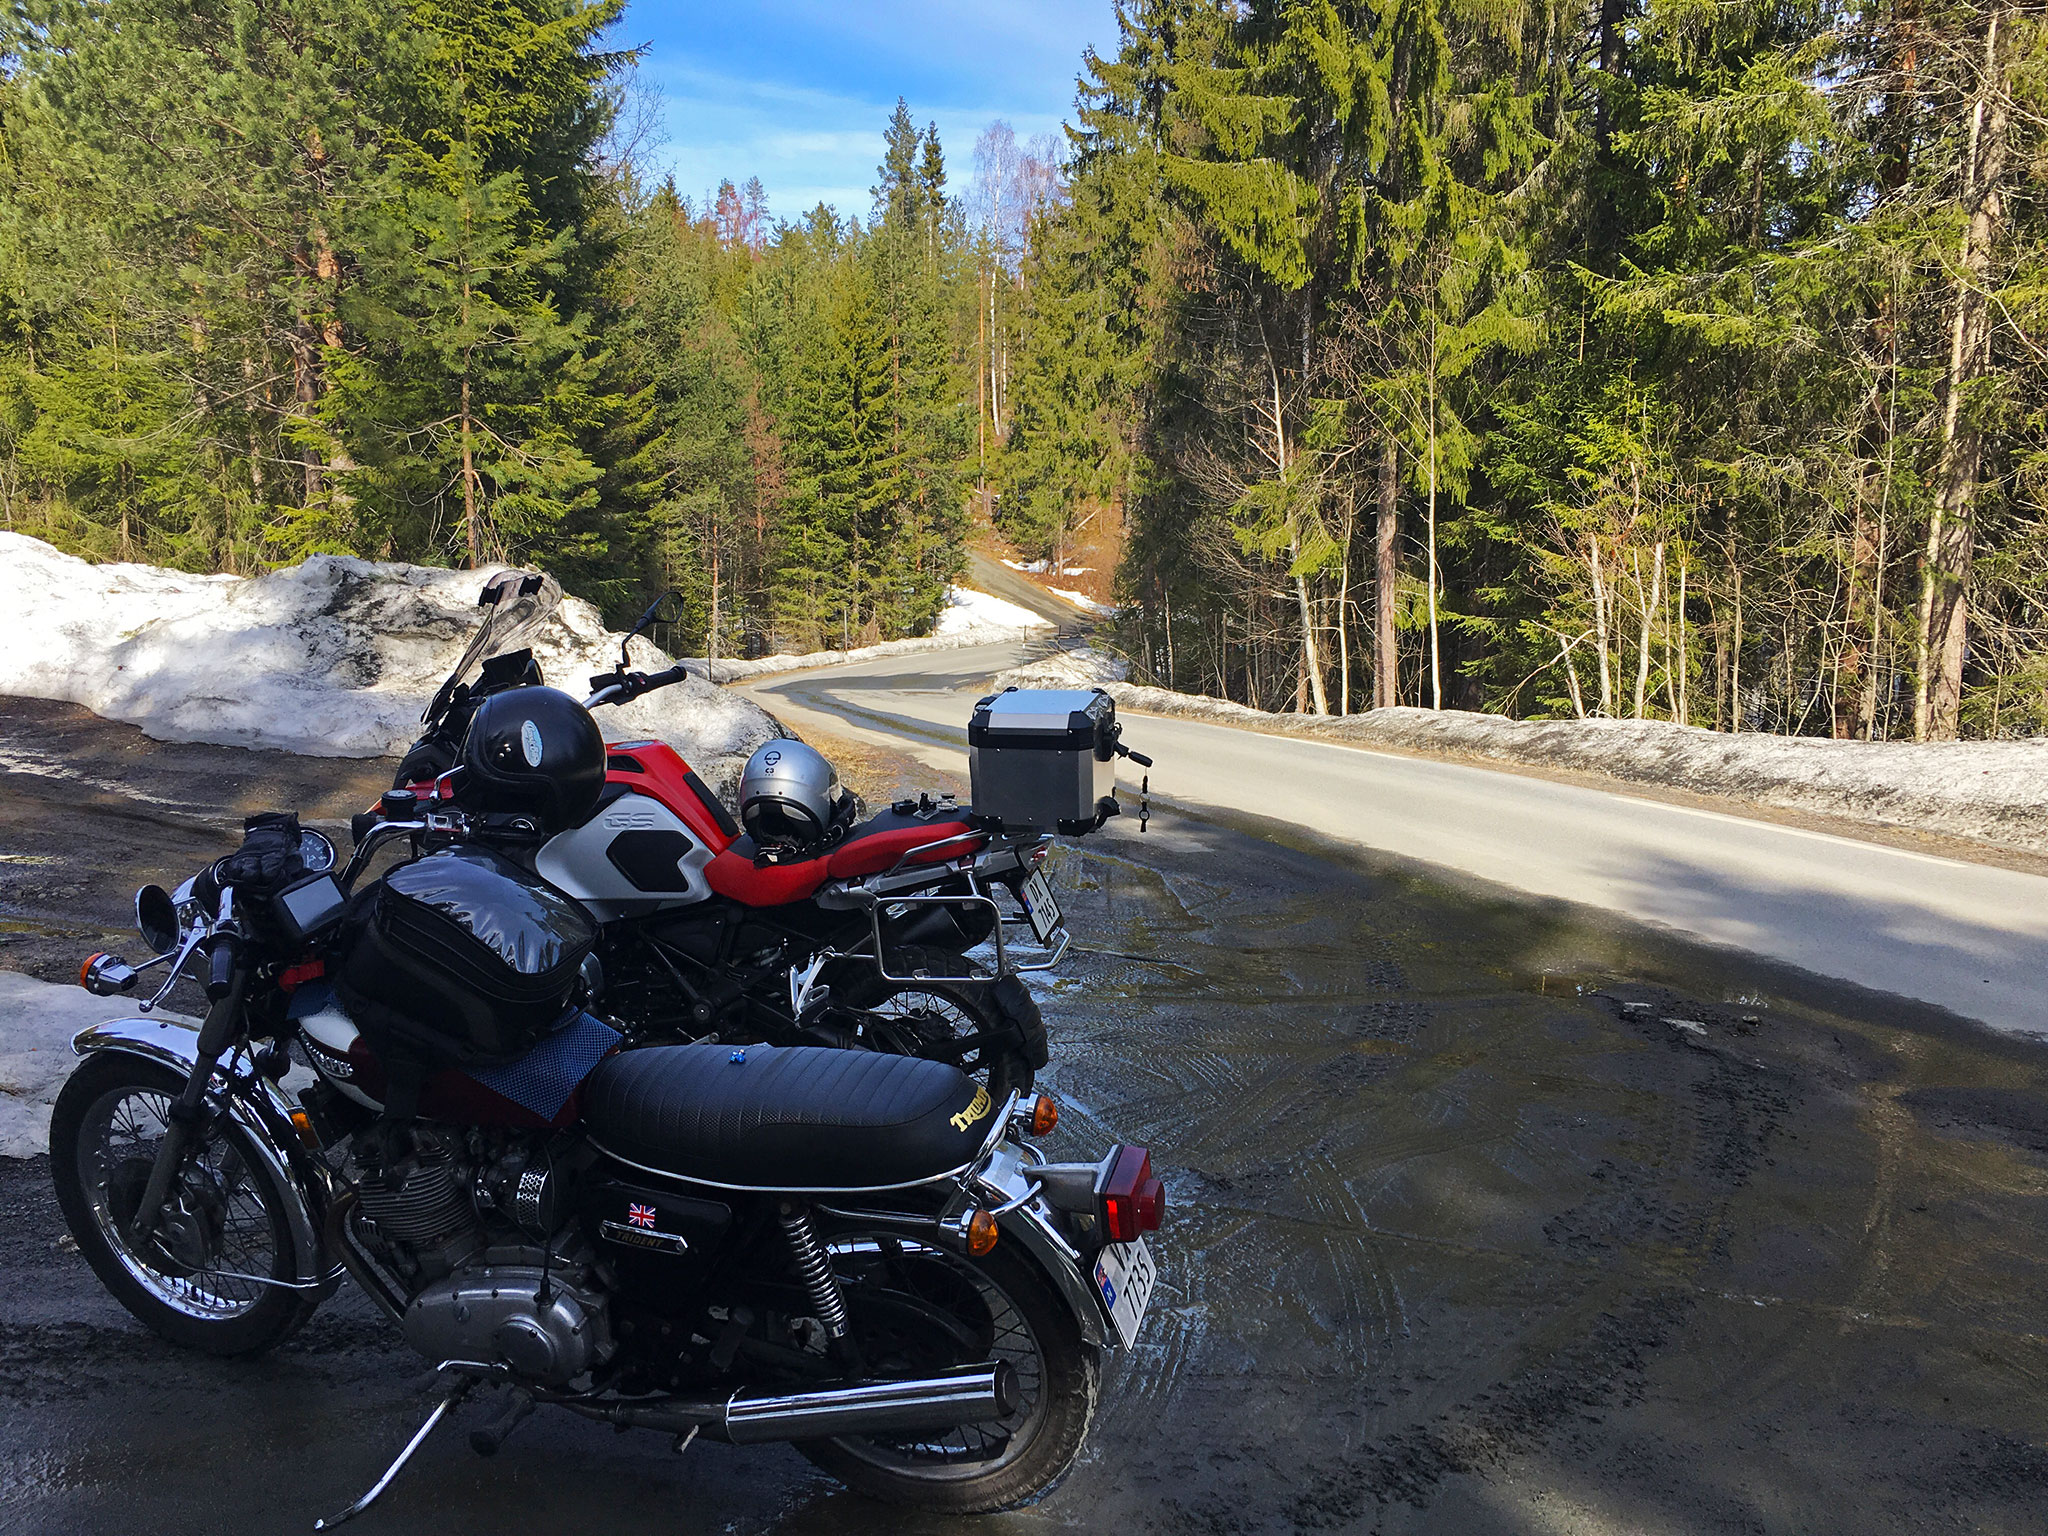 Spring riding: parked in Lur valley